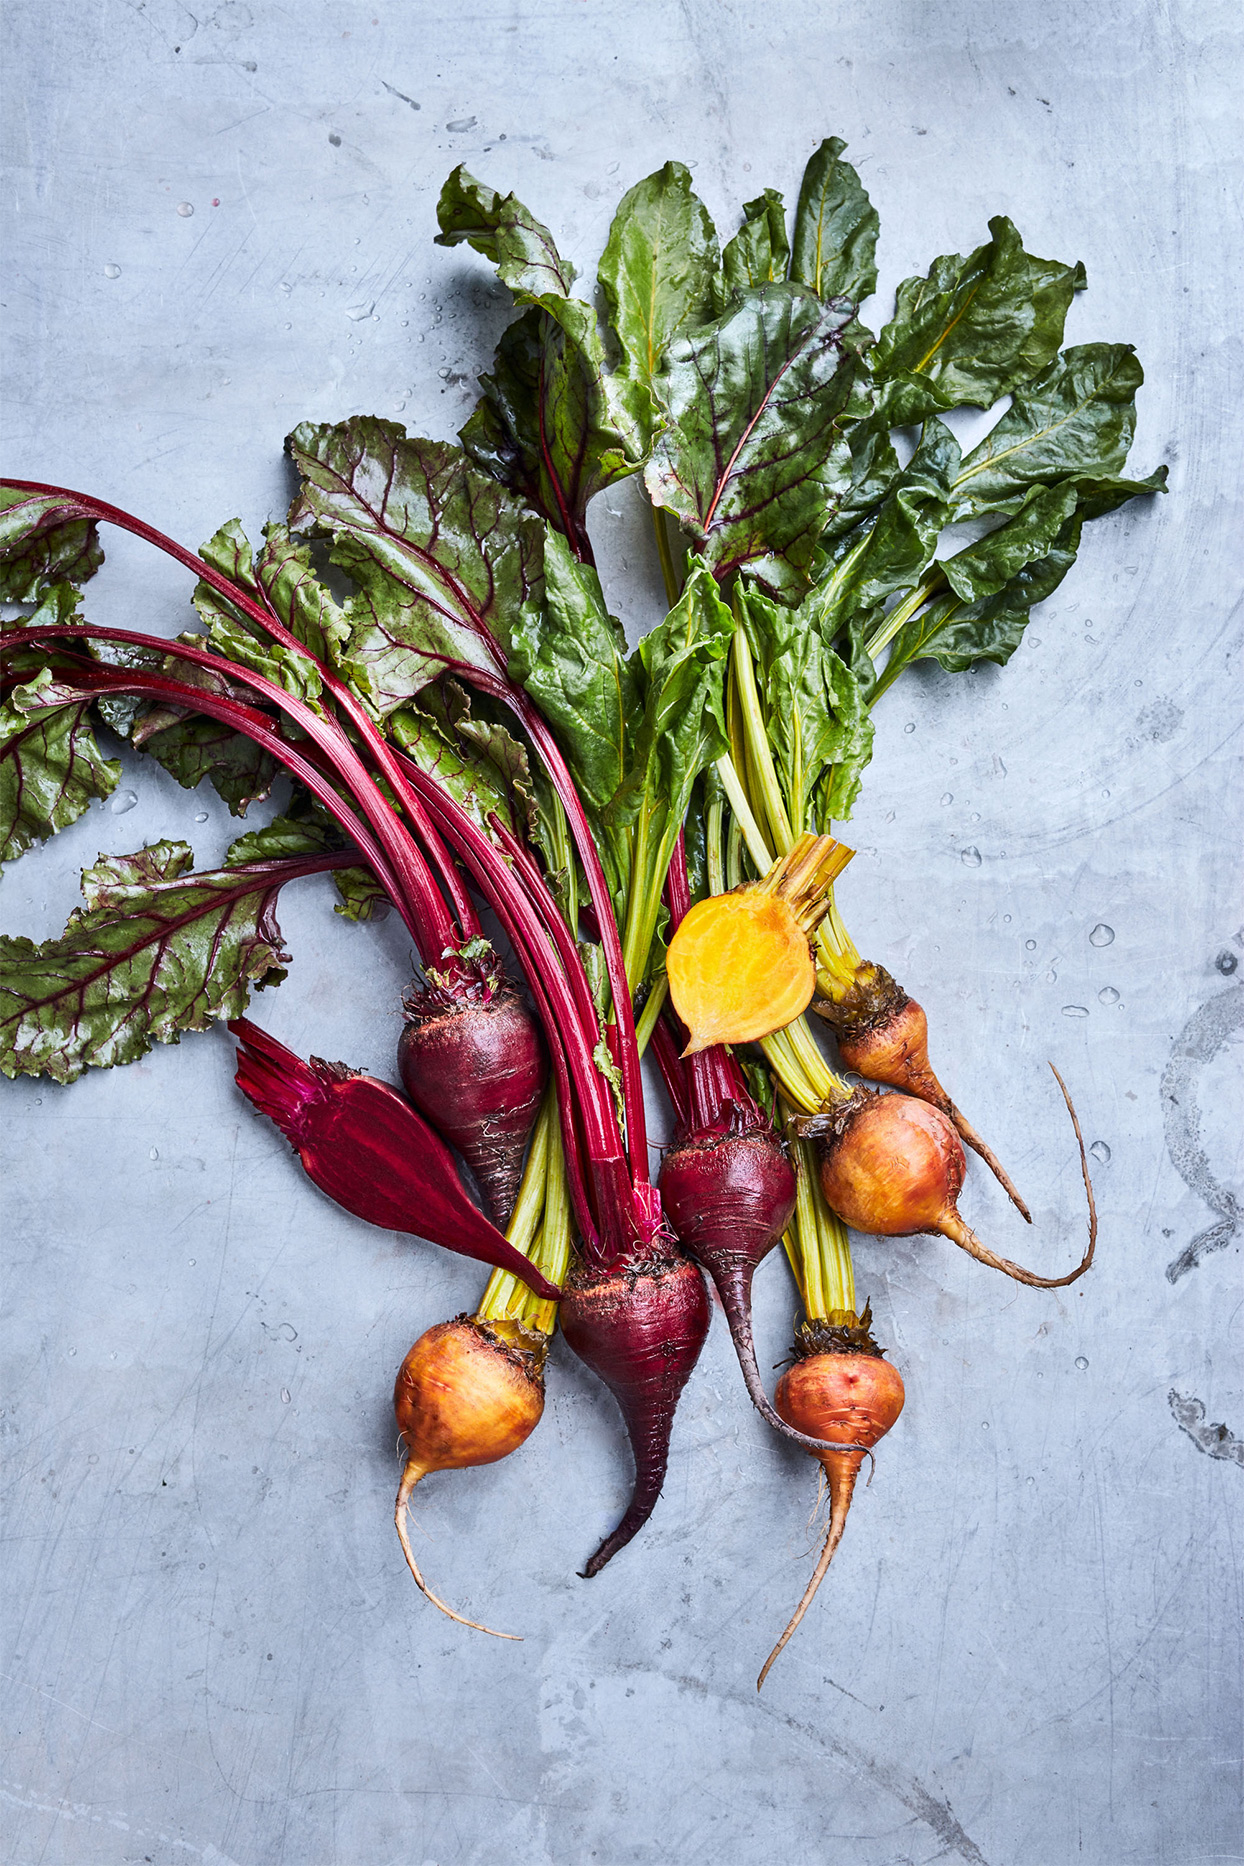 bundle of colorful beets